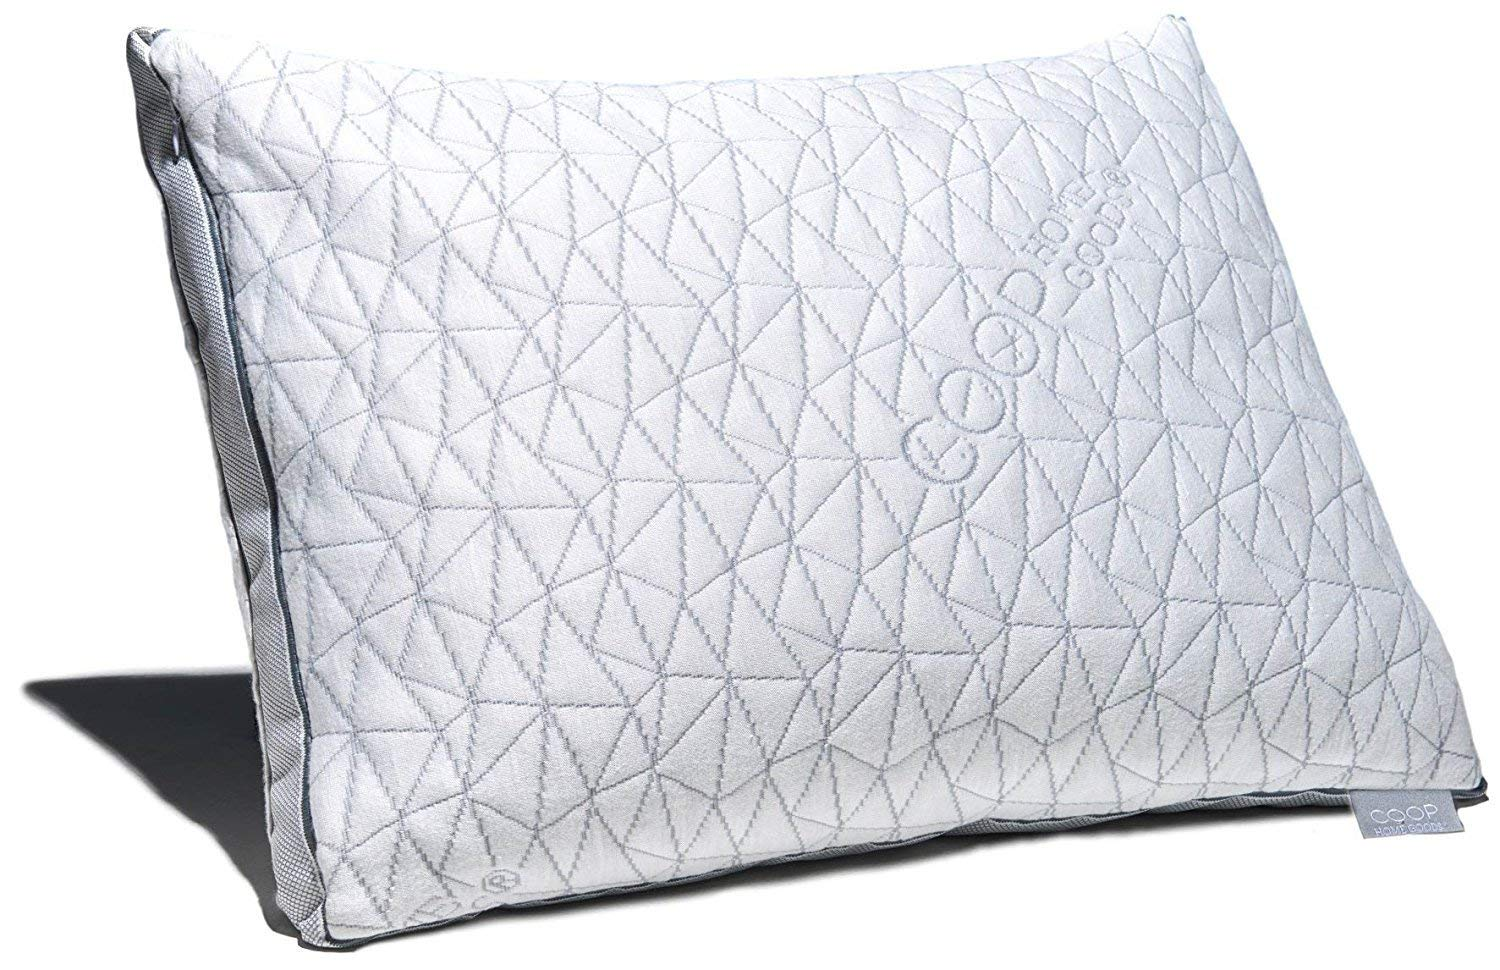 Gel Infused Memory Foam Pillow Coop Home Goods Eden Shredded Memory Foam Pillow With Cooling